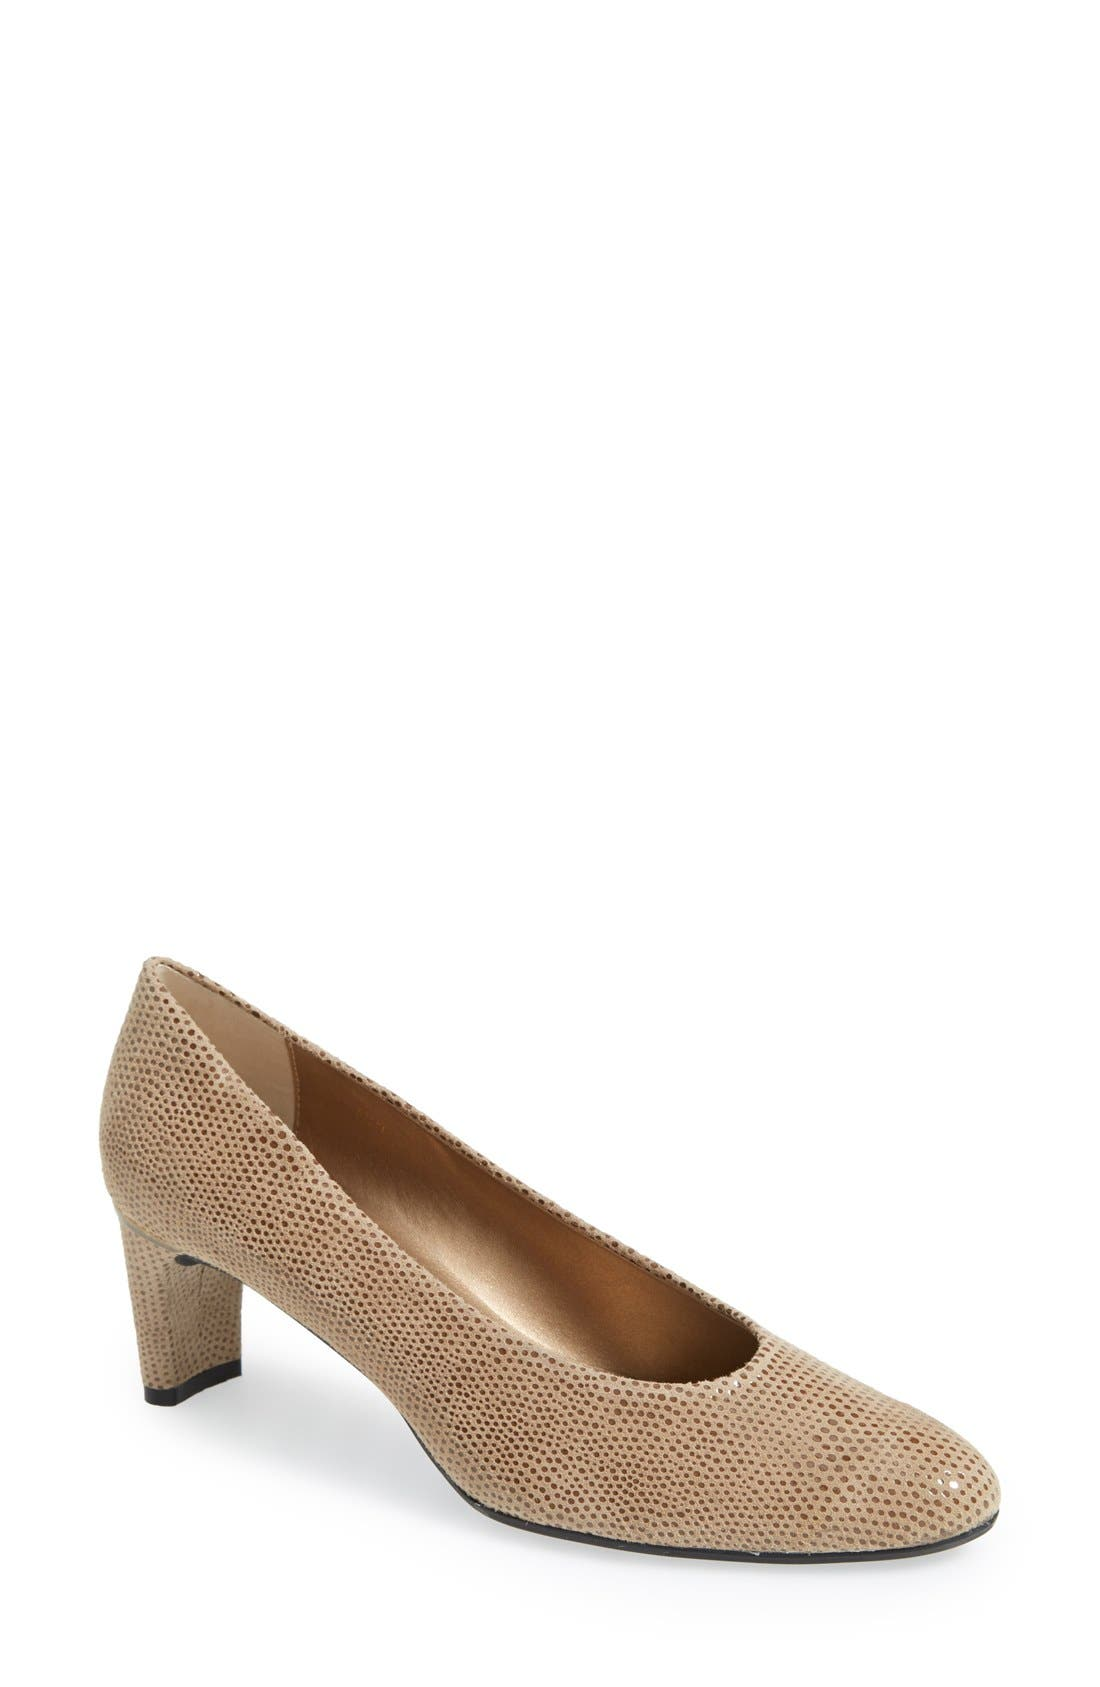 'Dayle' Pump,                         Main,                         color, Taupe Print Leather